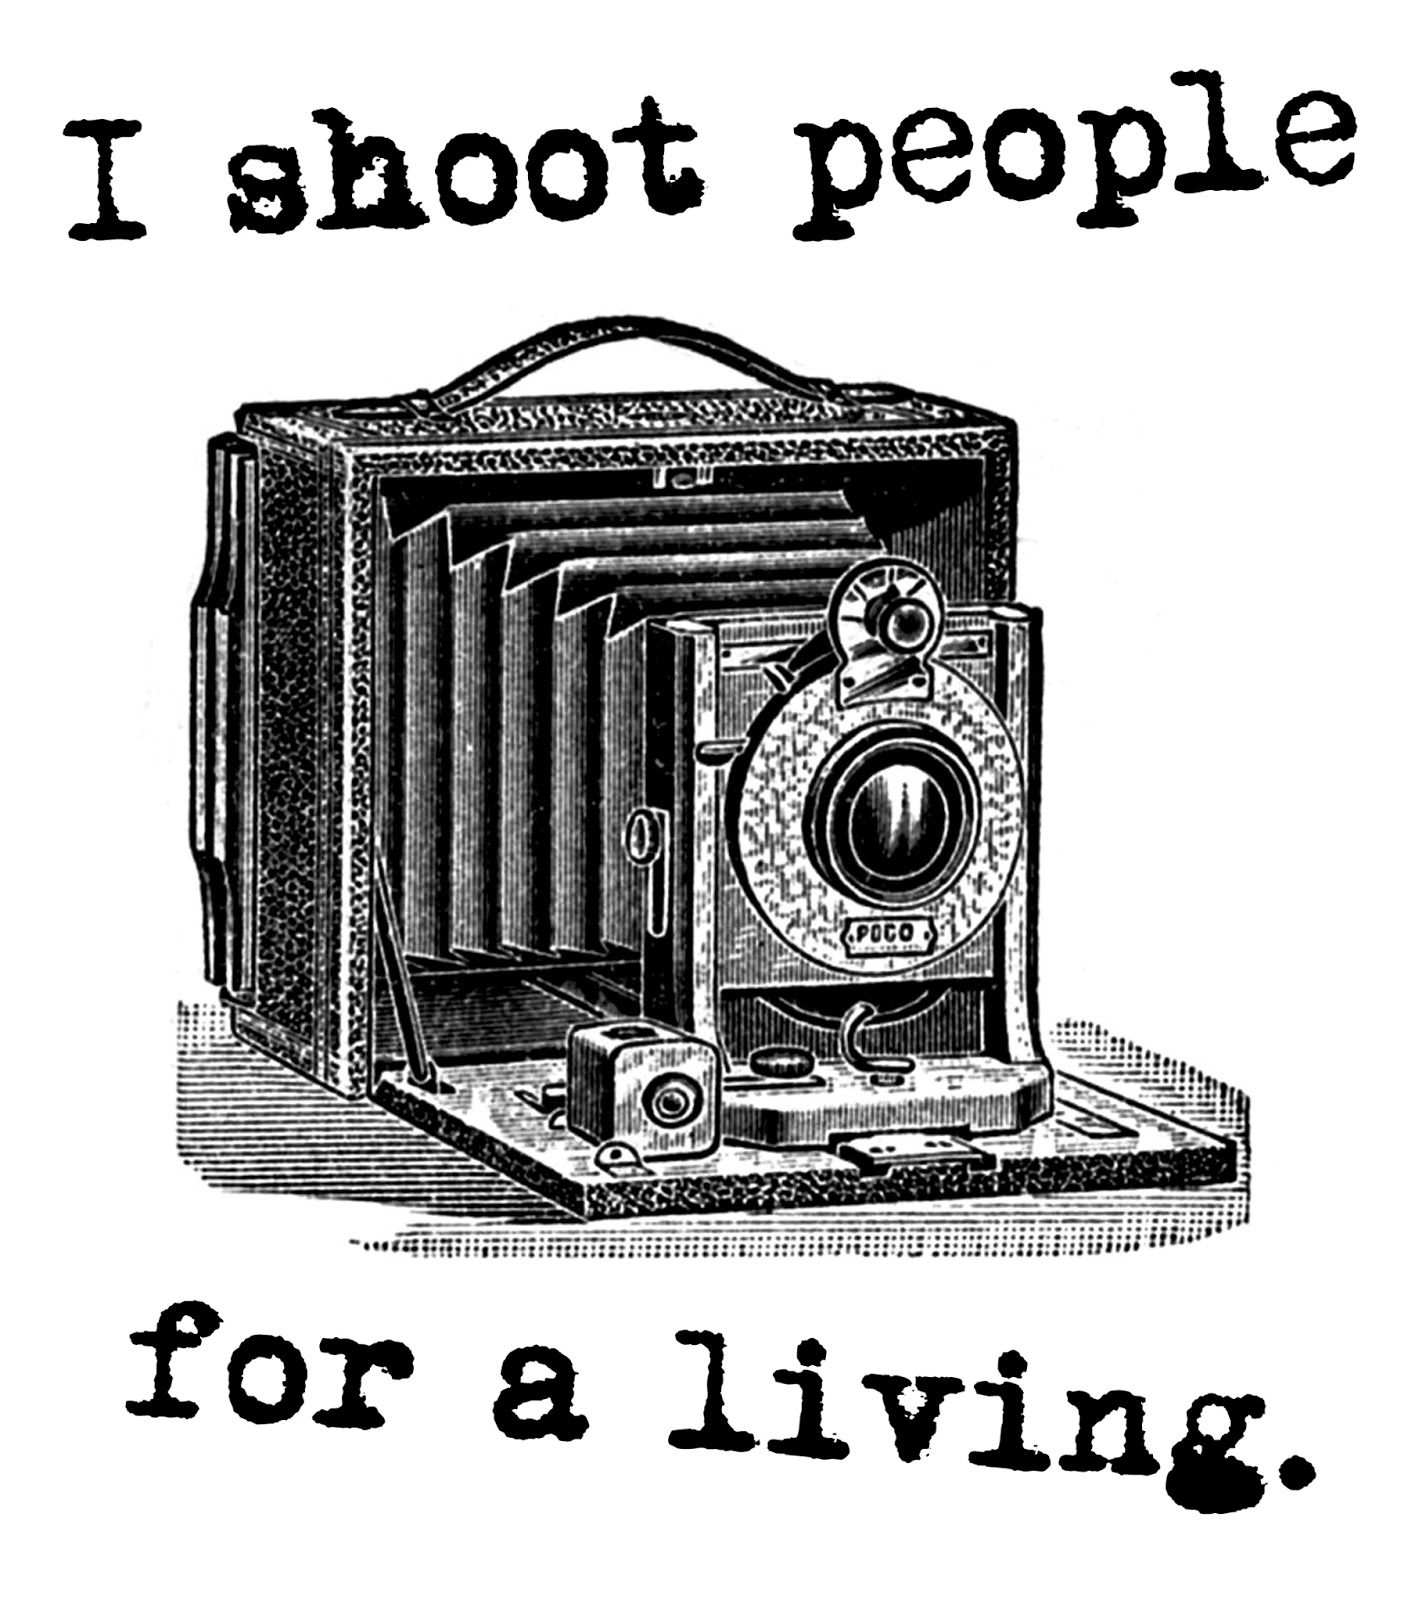 Dslr Camera Funny Quotes: 50 FREE Digital Downloads A Collection Of Digital Collages